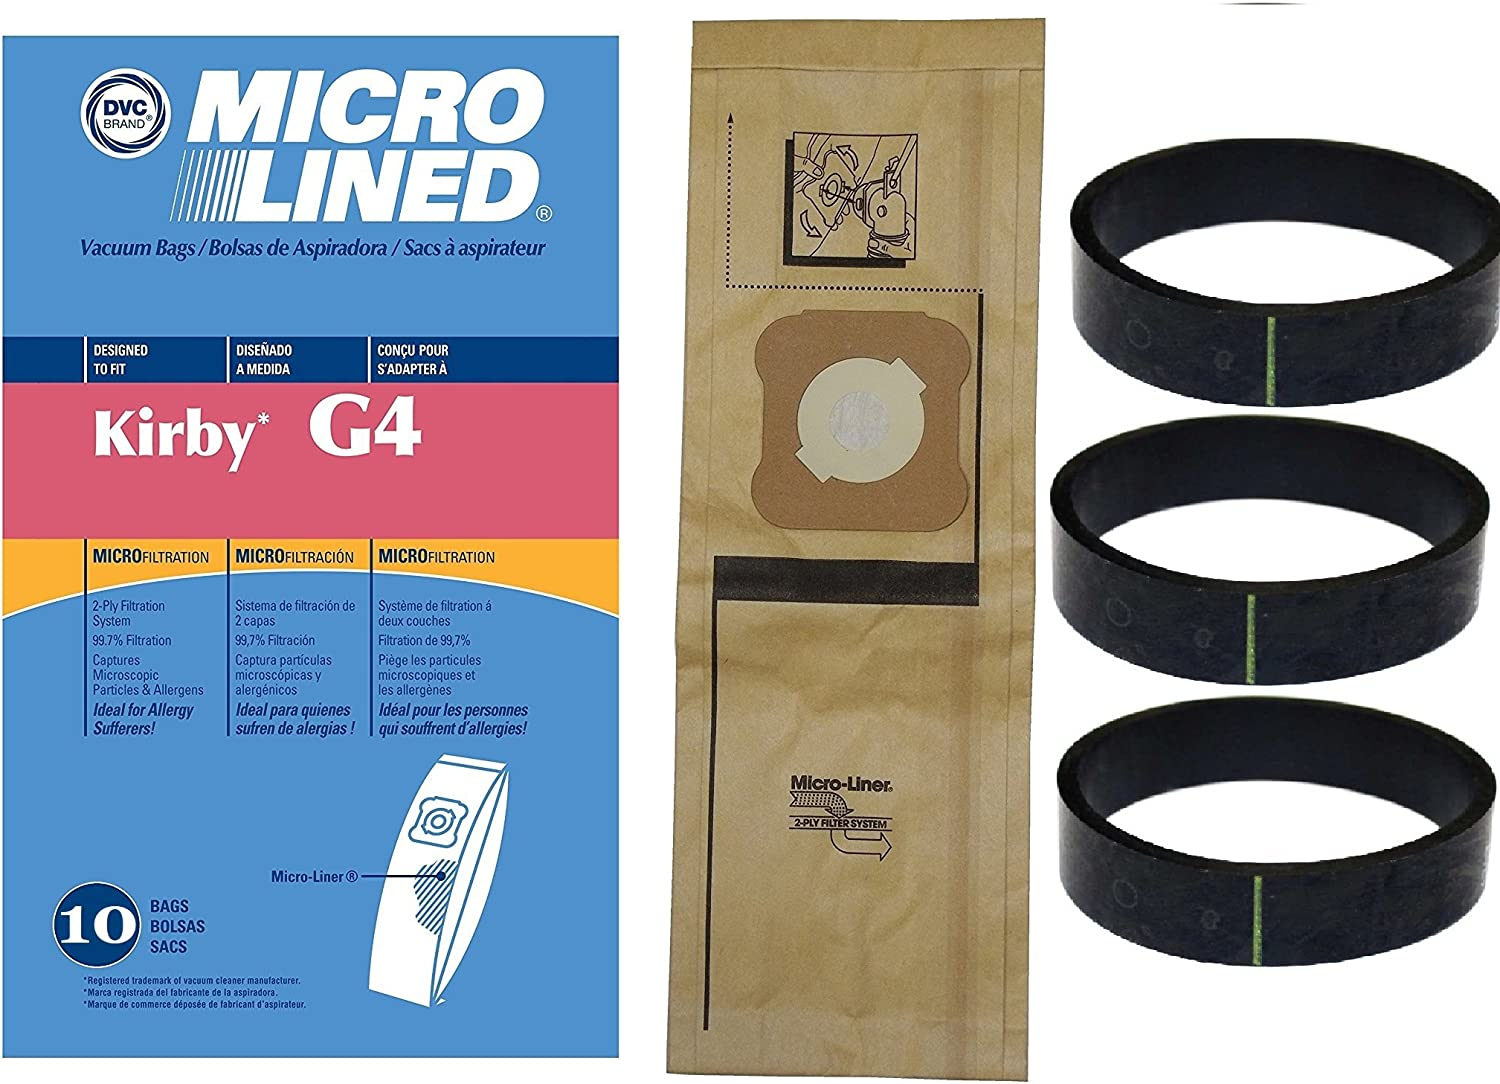 2 Pk. Ultimate G And Kirby G3-G6 Kirby Allergen Reduction Filters for All Generation Models Including Kirby Sentria